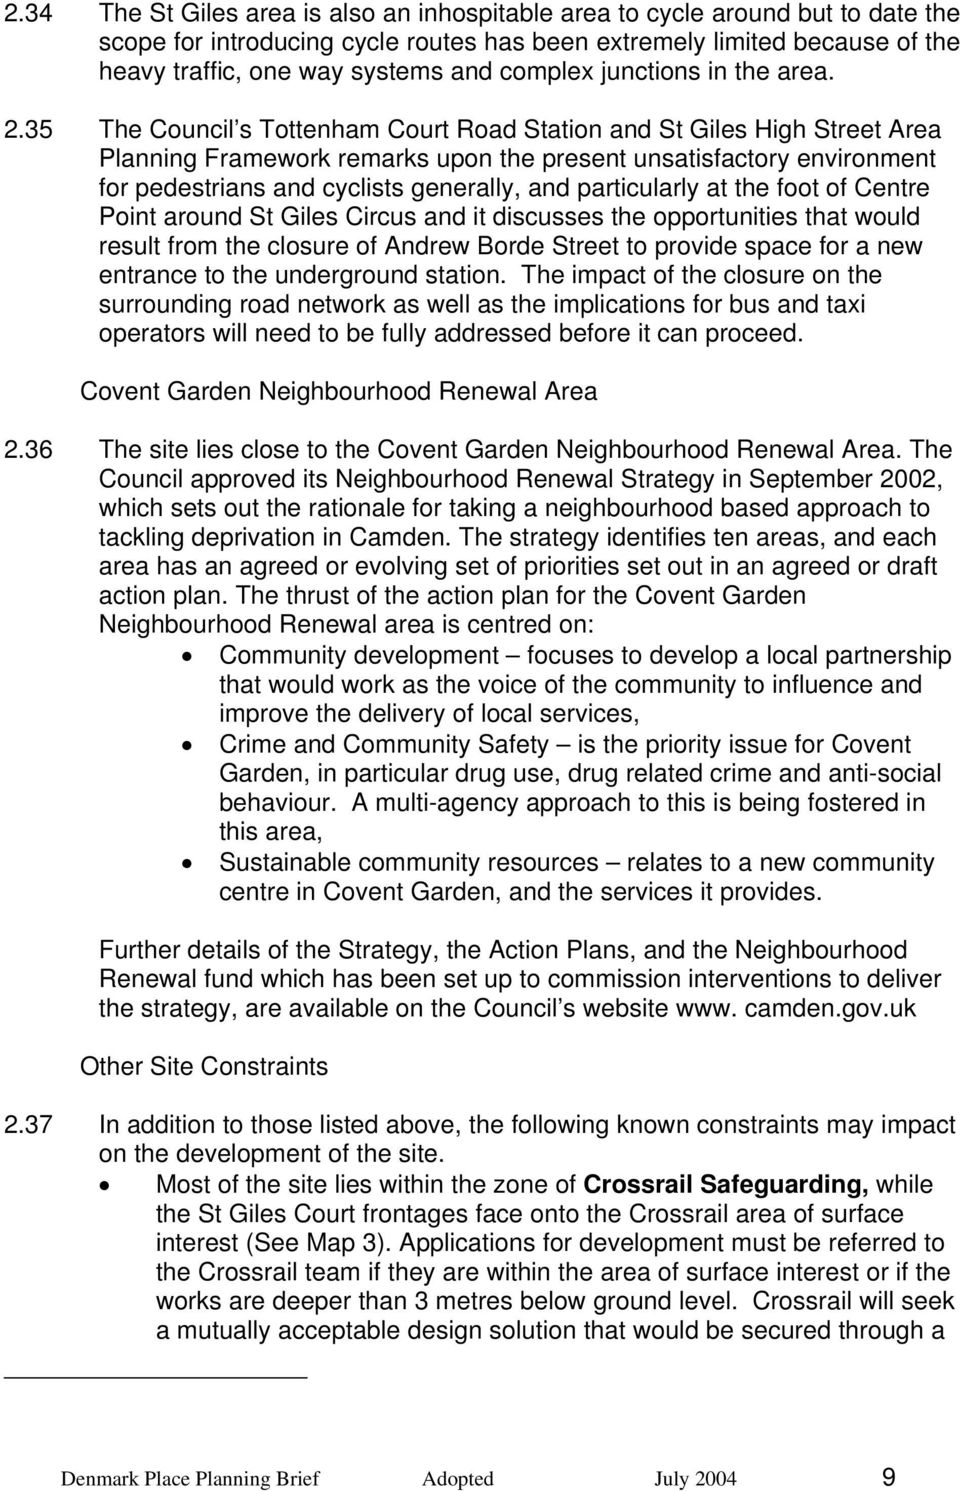 35 The Council s Tottenham Court Road Station and St Giles High Street Area Planning Framework remarks upon the present unsatisfactory environment for pedestrians and cyclists generally, and